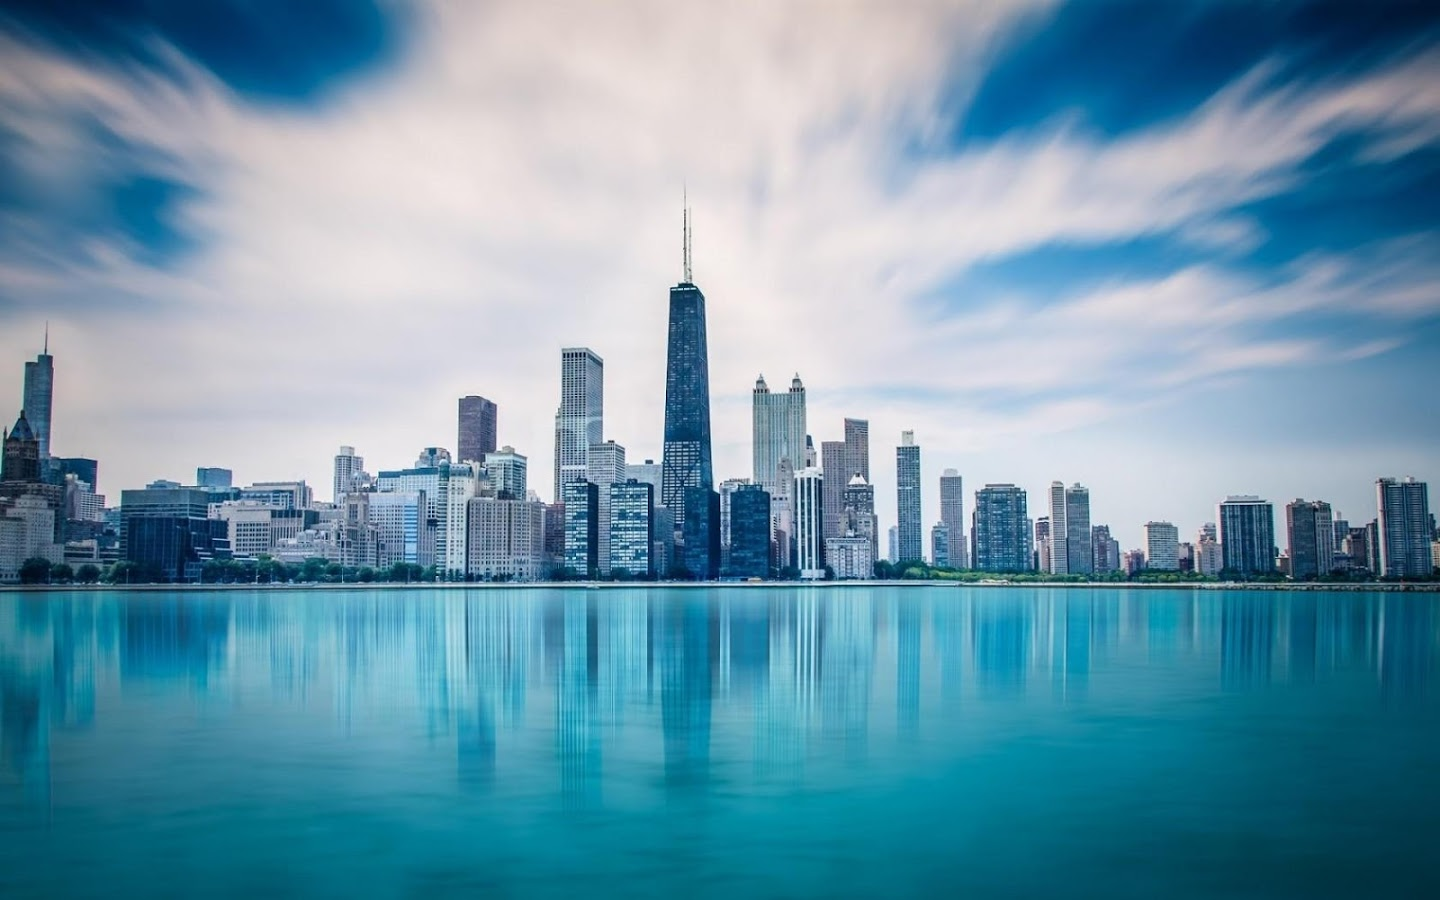 Best Chicago Wallpapers   Android Apps on Google Play 1440x900